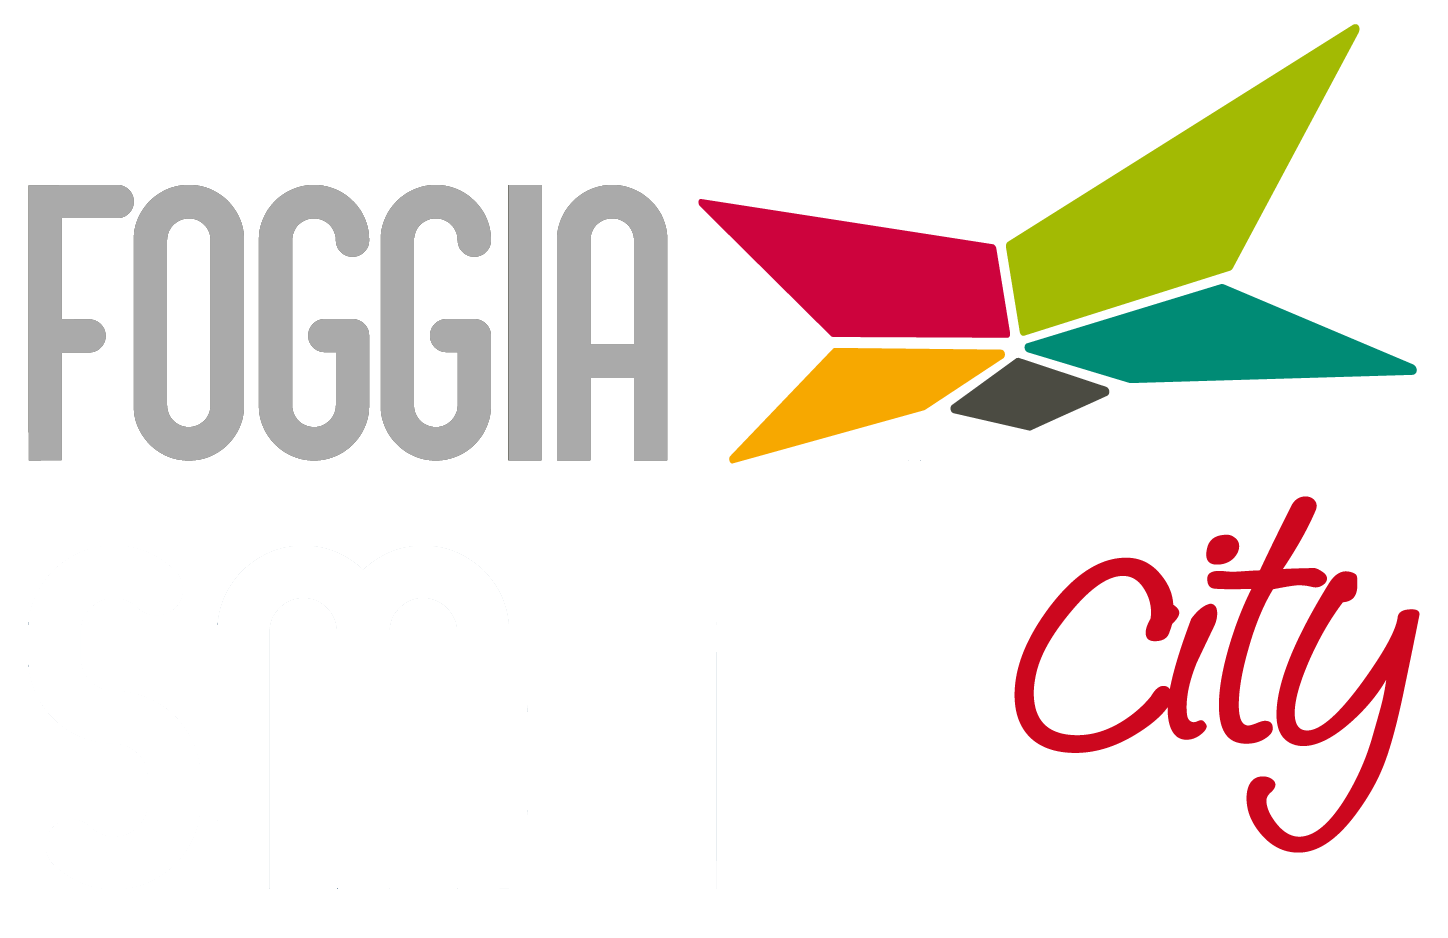 Foggia Smart City